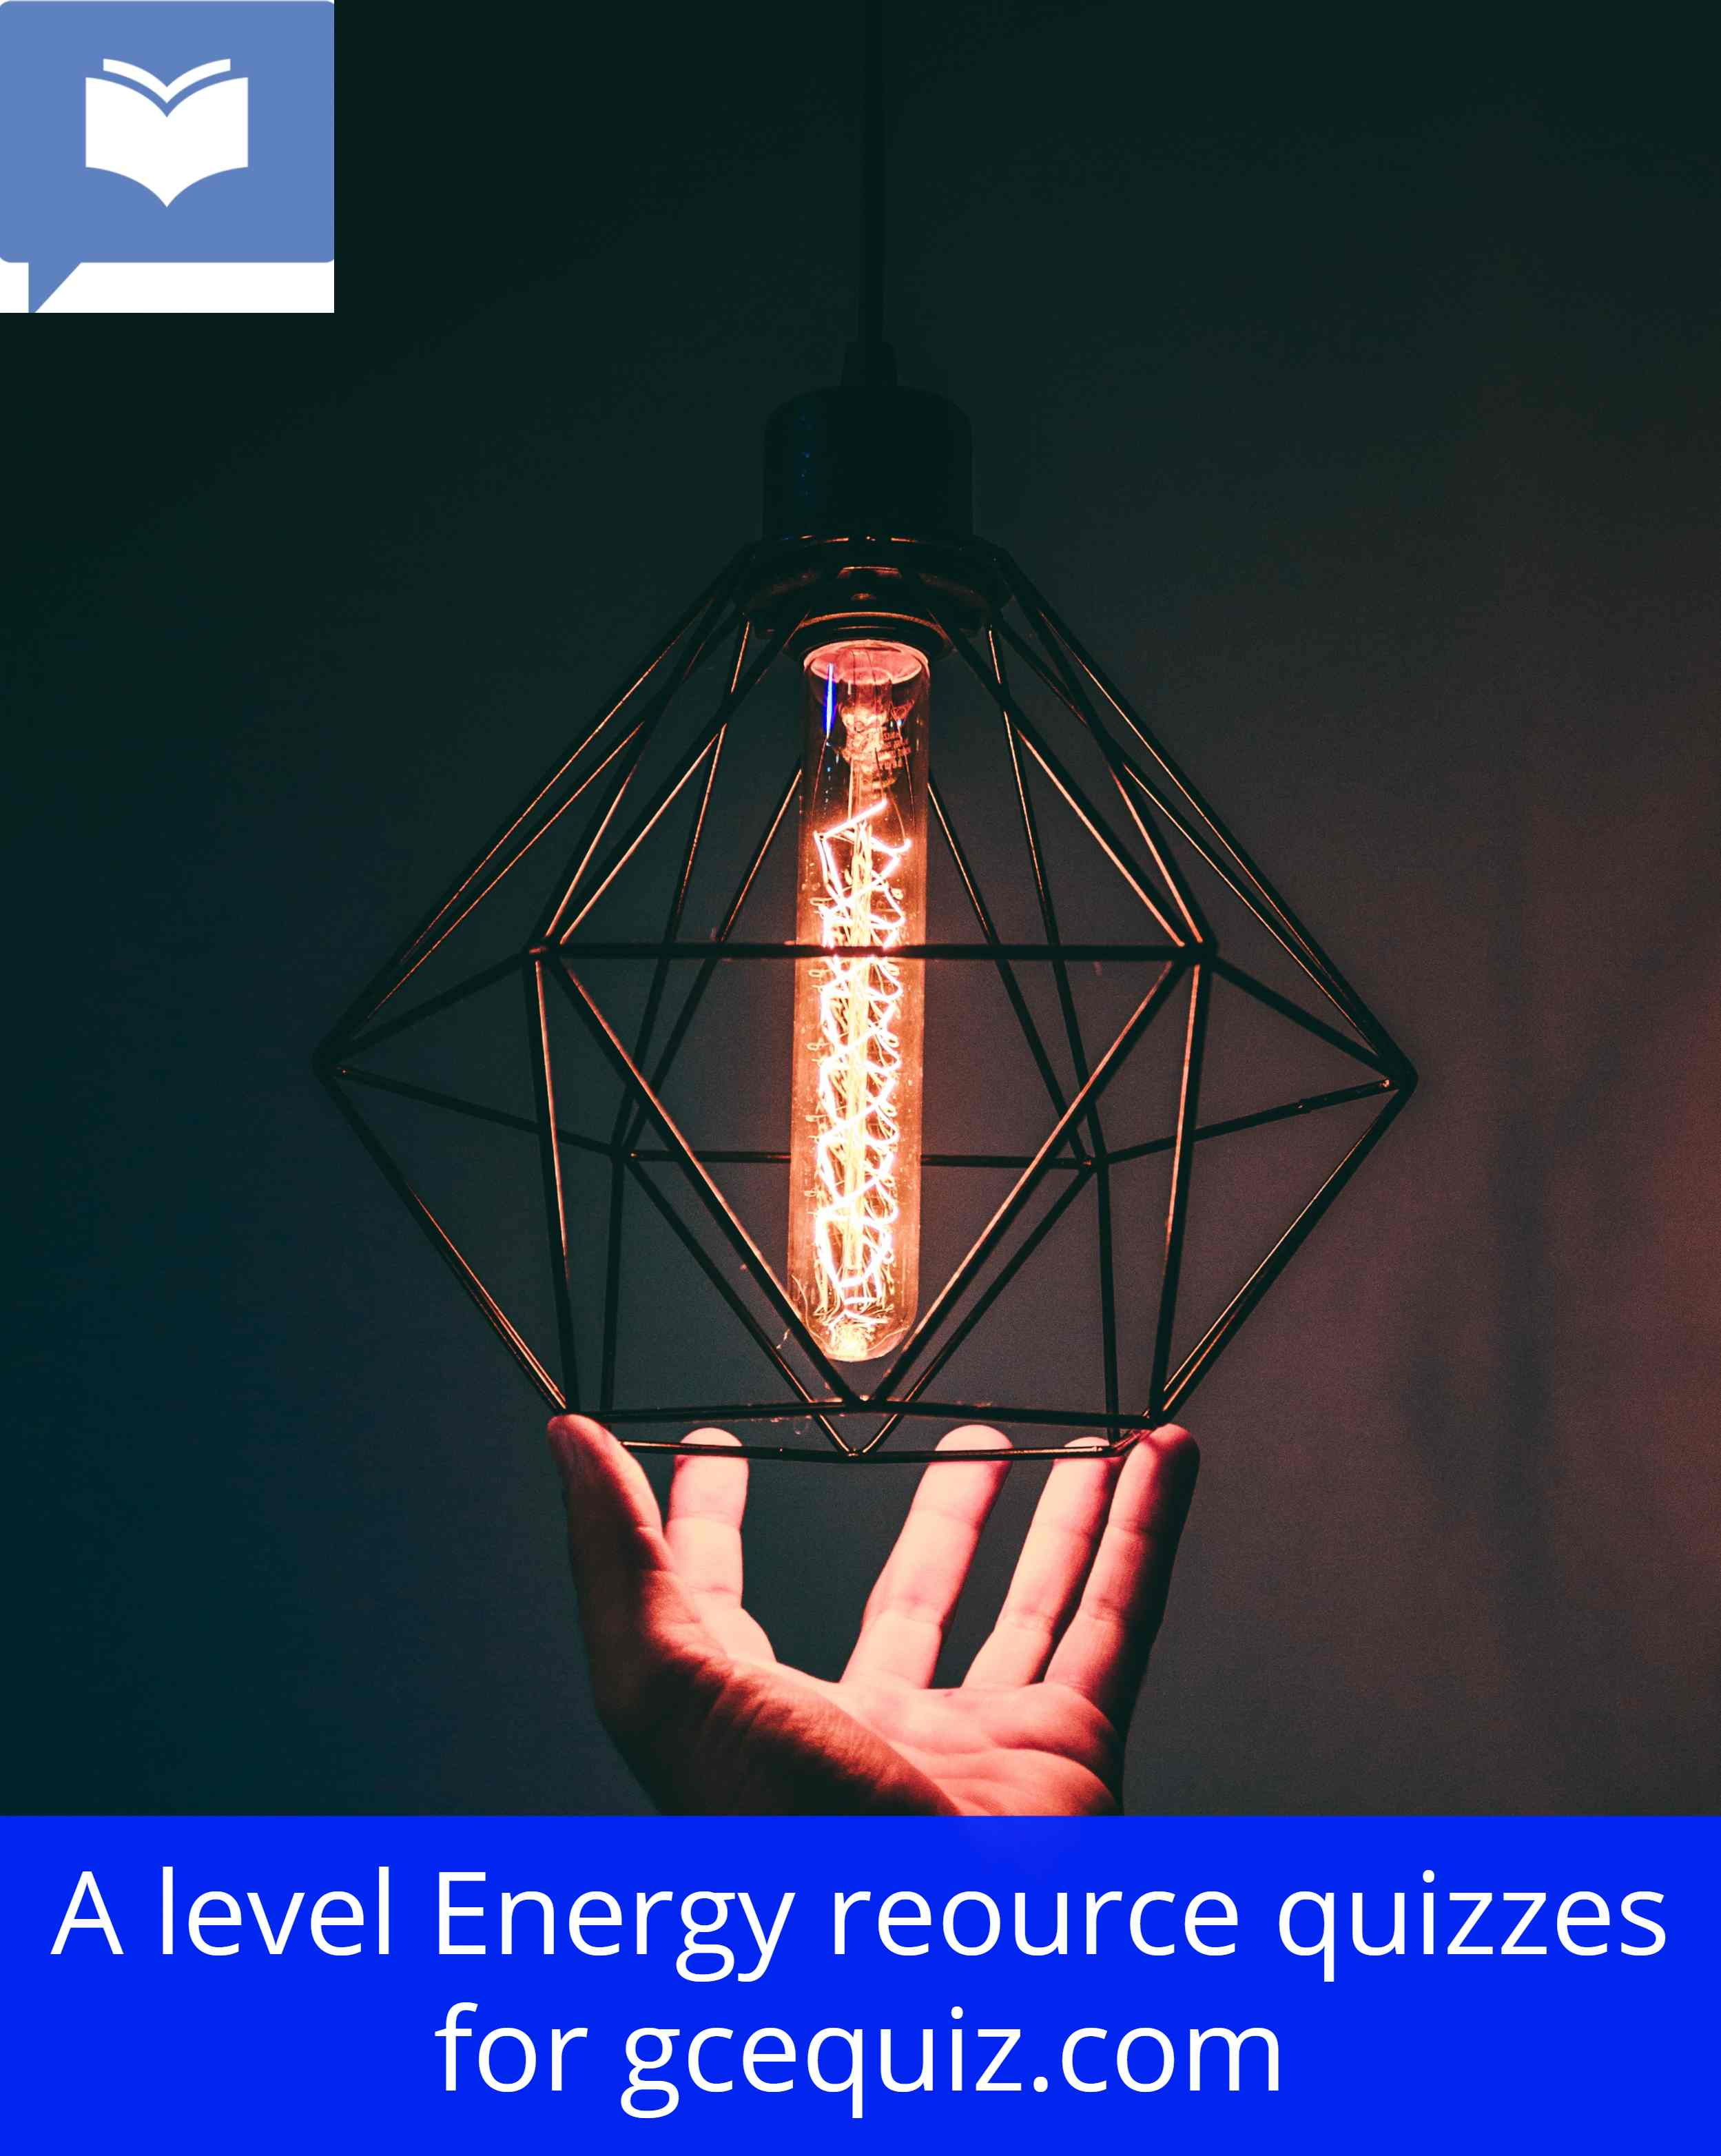 A level Energy Resources Quizzes